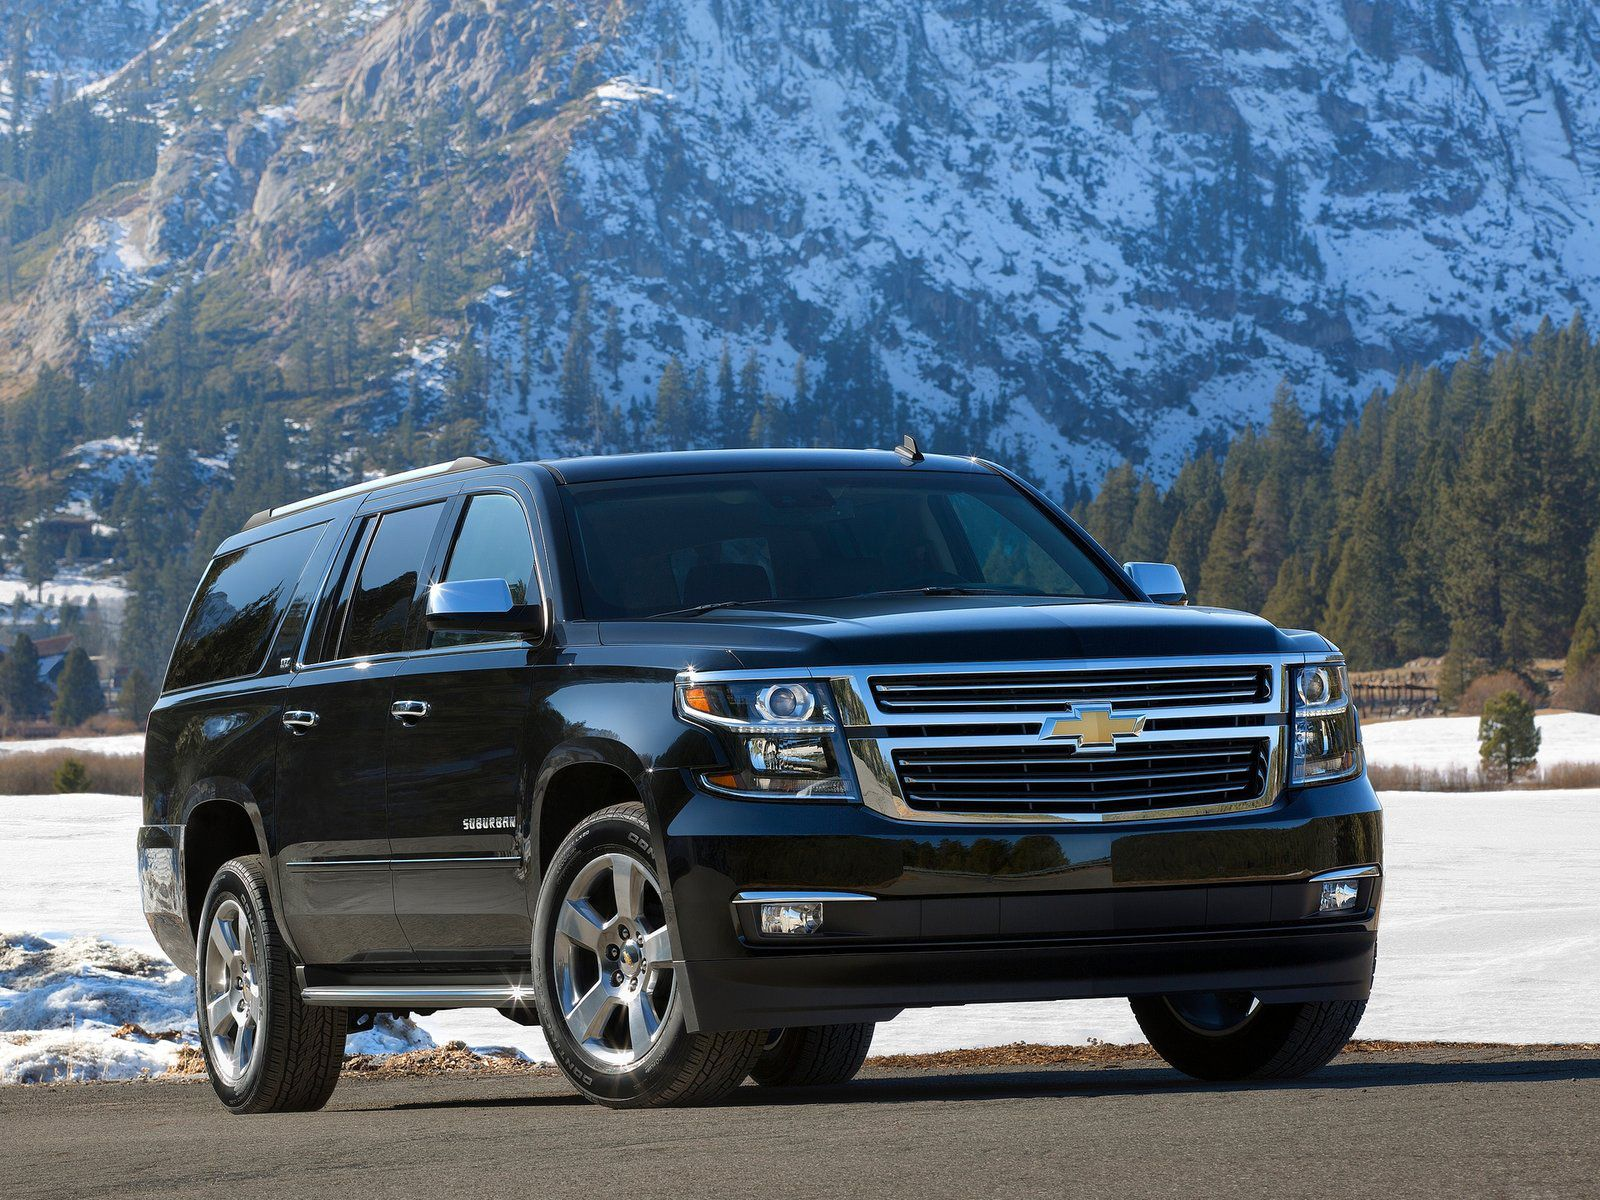 Chevrolet suburban 2015 wallpaper wallpaper